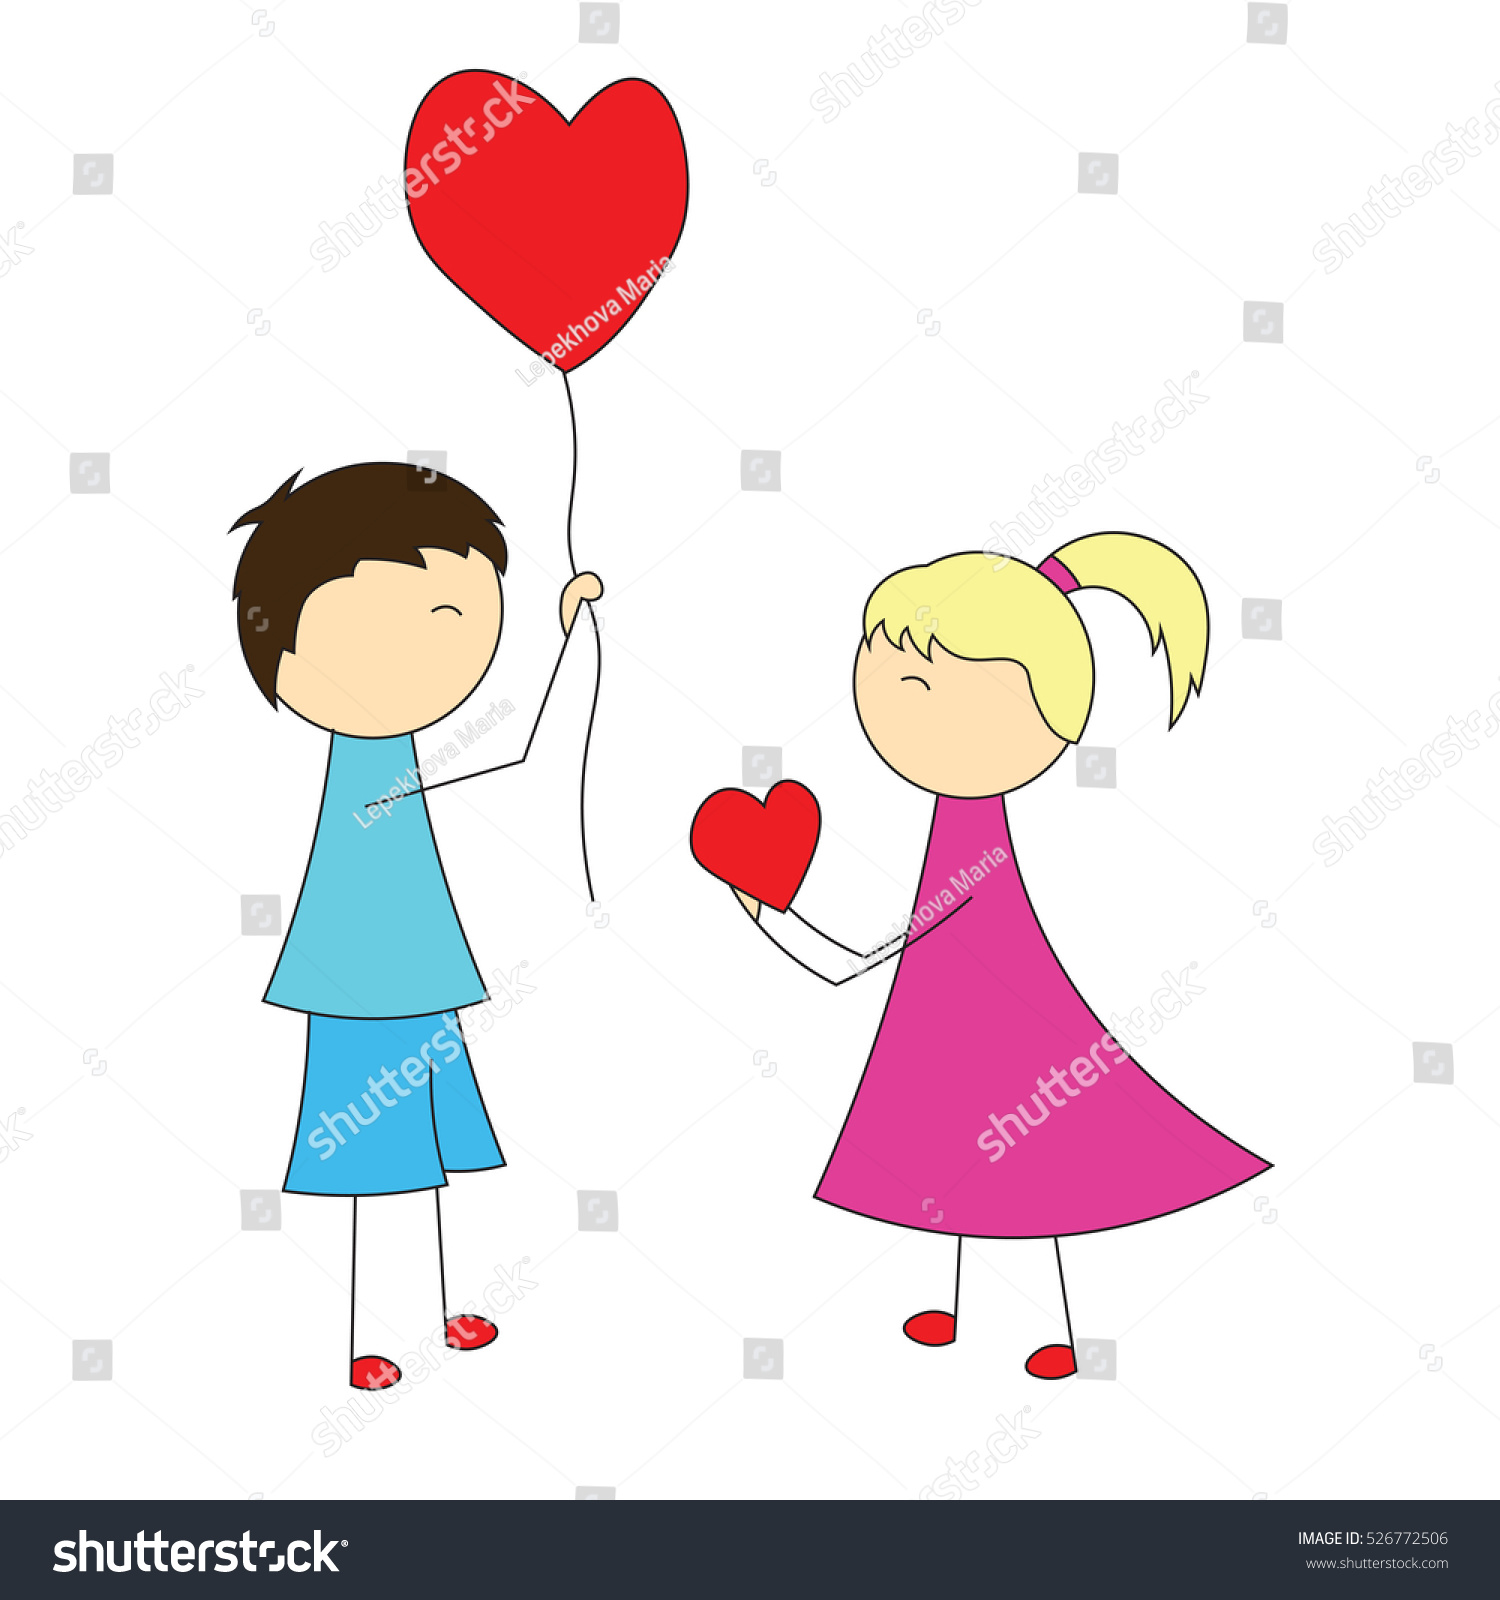 Simple Cartoon Boy Gives Balloon Heart Stock Vector Royalty Free